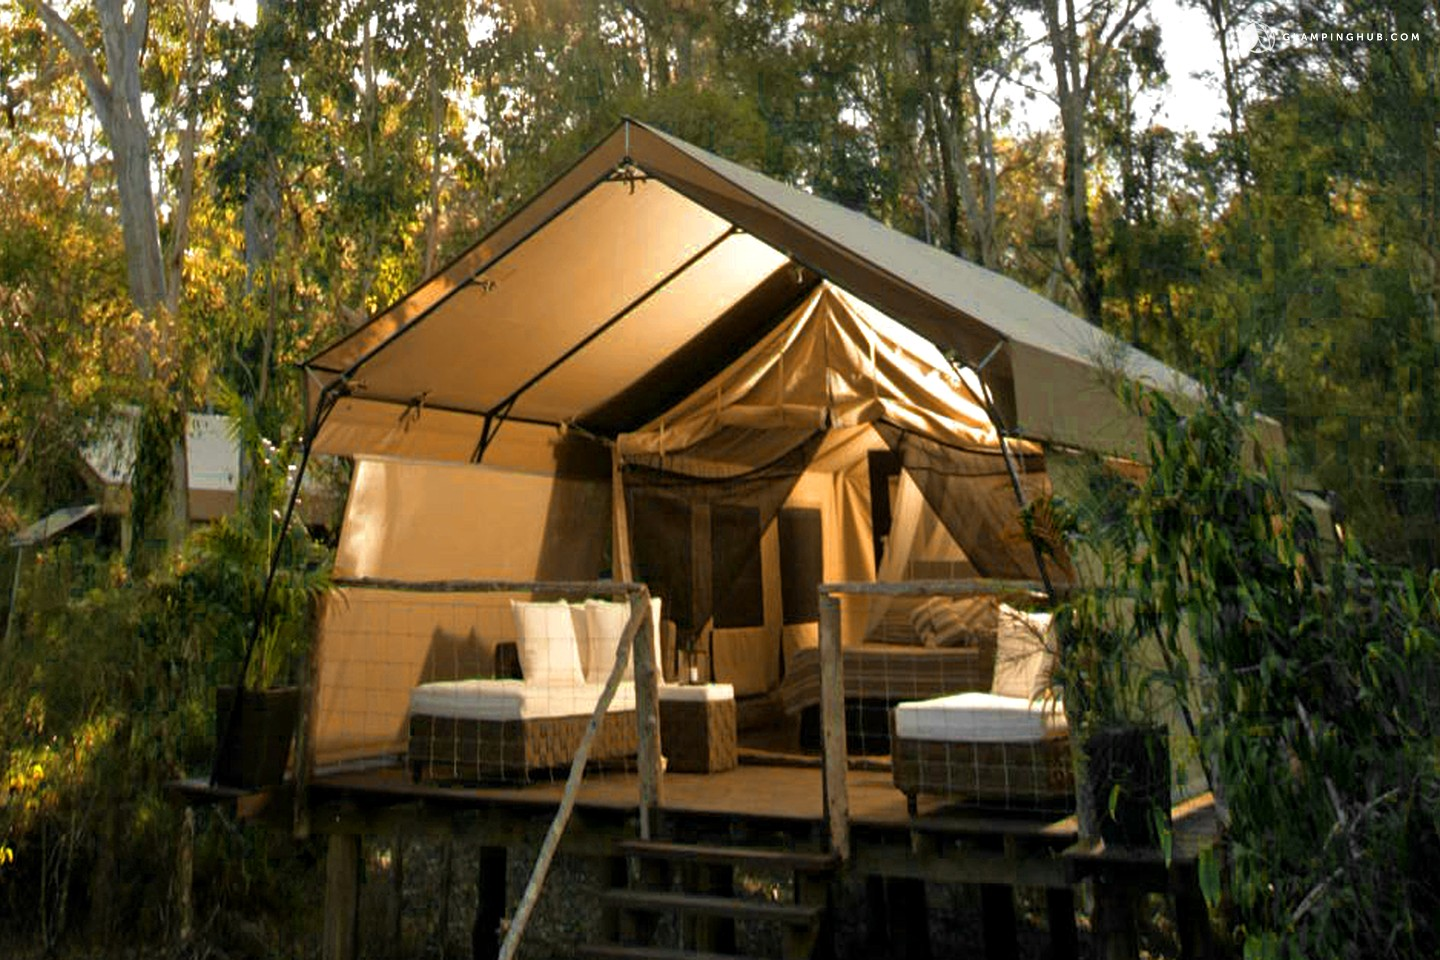 Glamping new south wales luxury camping nsw Tent a house